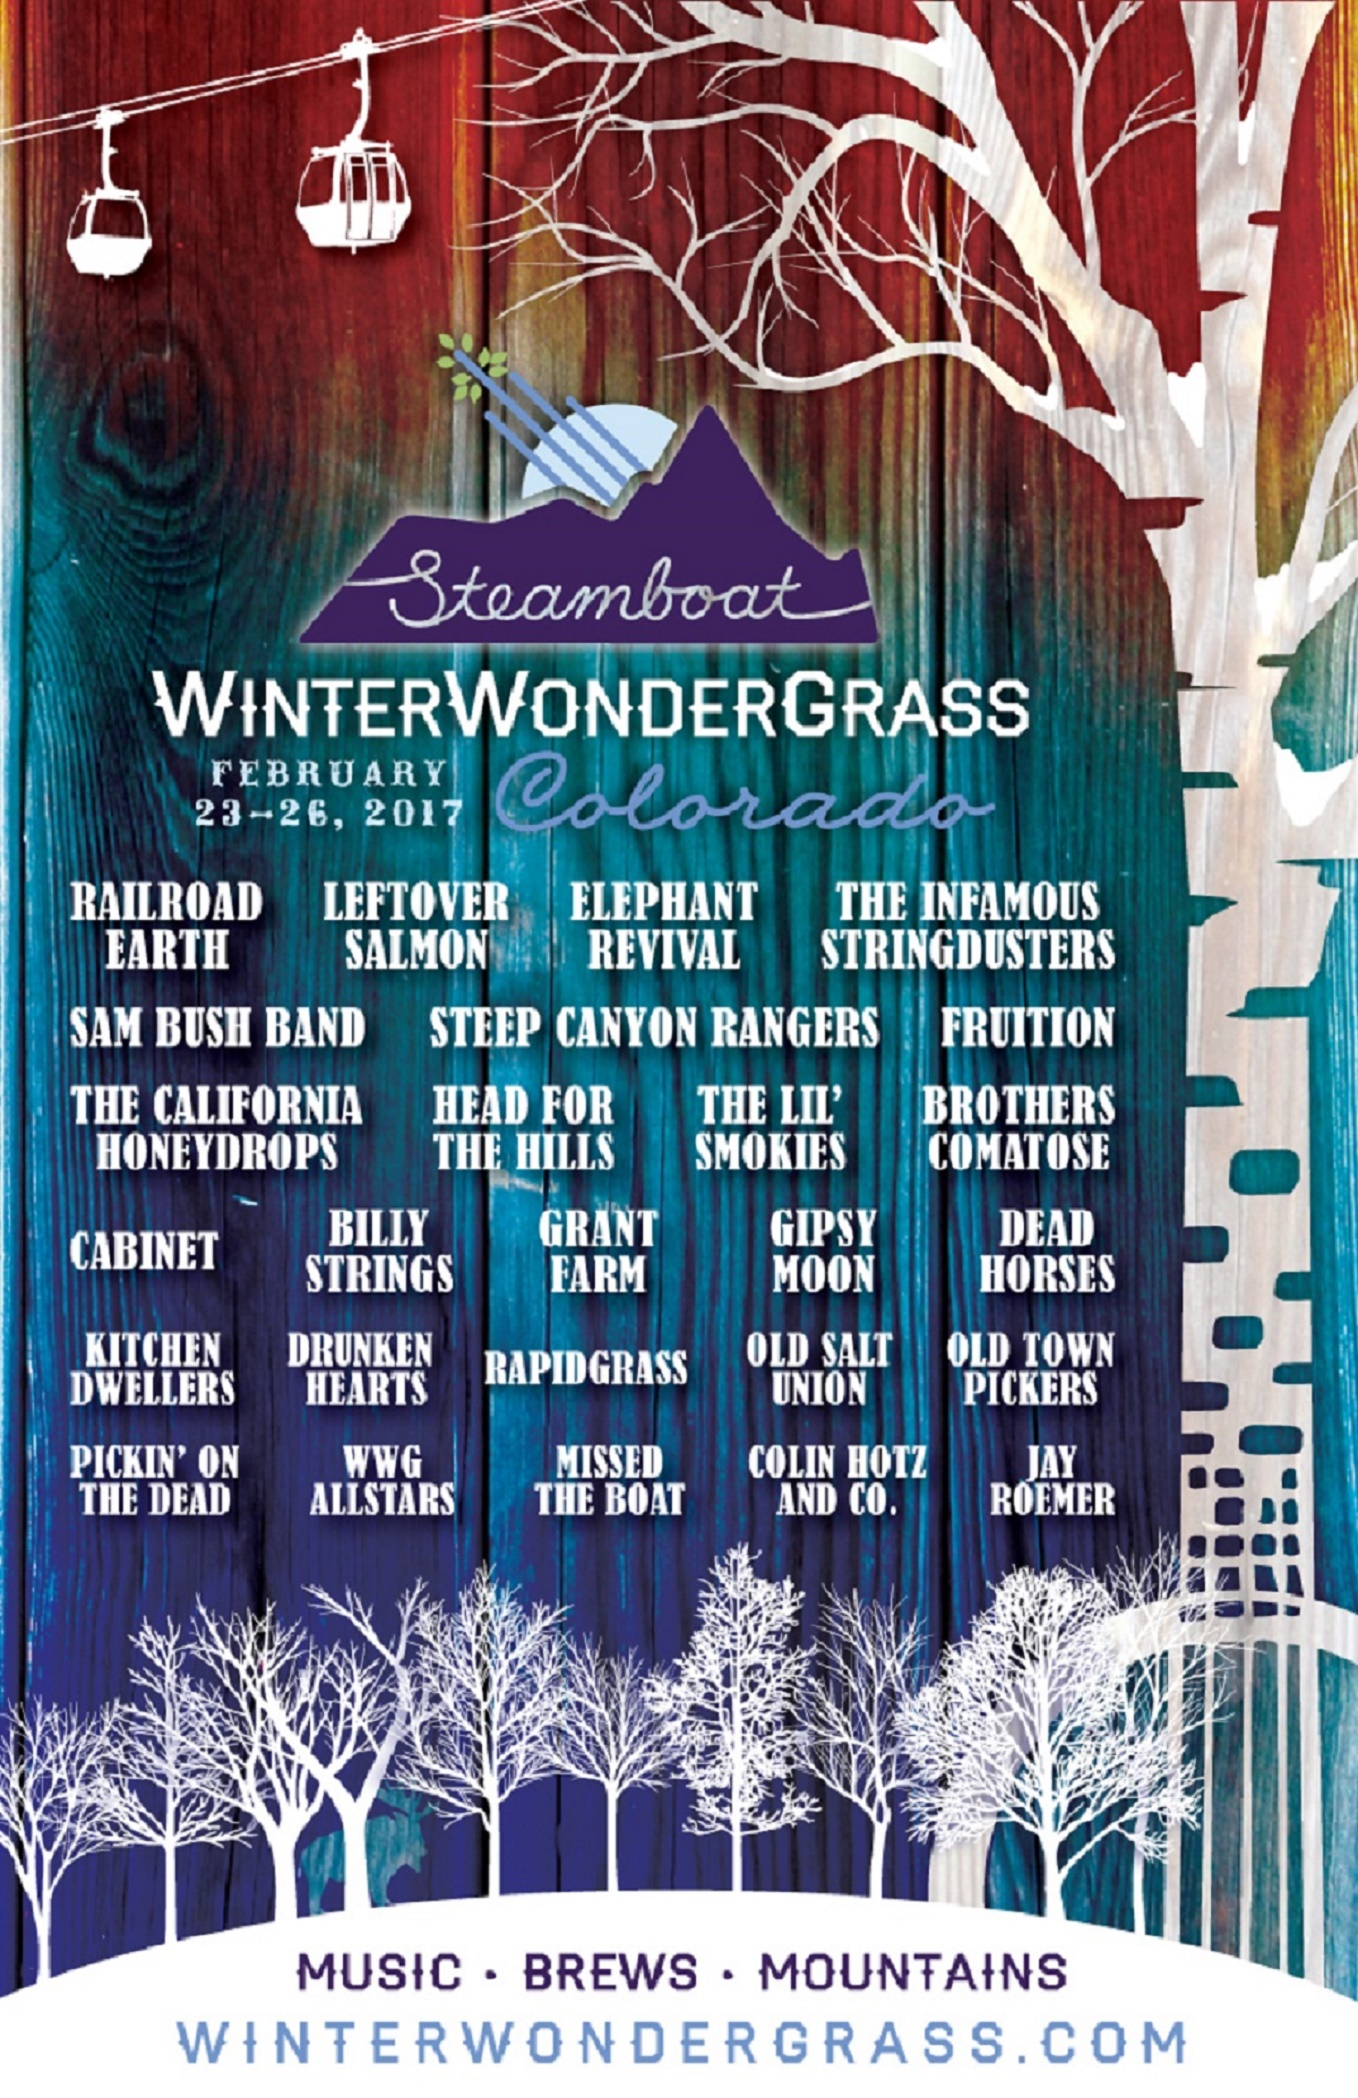 WinterWonderGrass Steamboat '17 LineUp